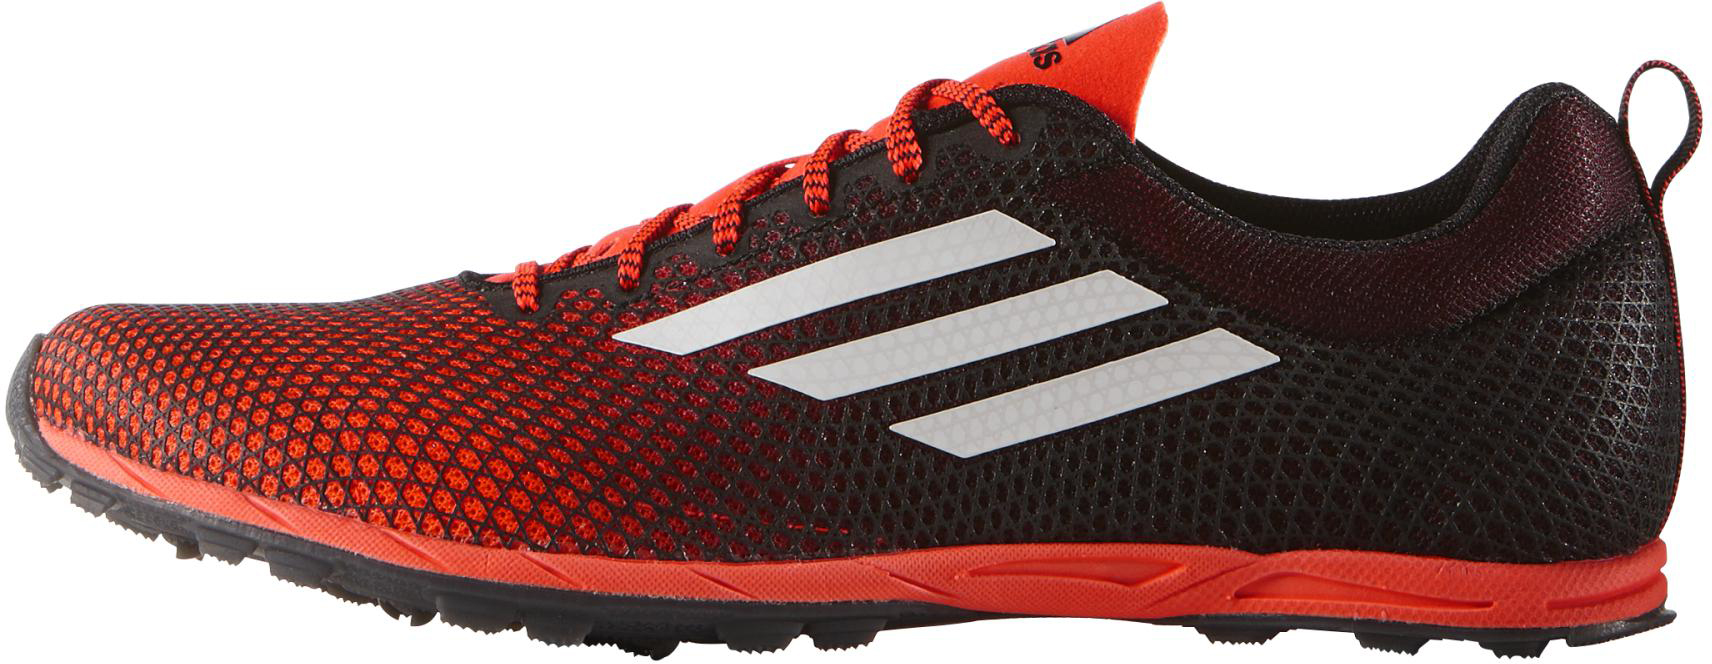 | adidas XCS 5 Cross Country Shoes (AW15) | Track